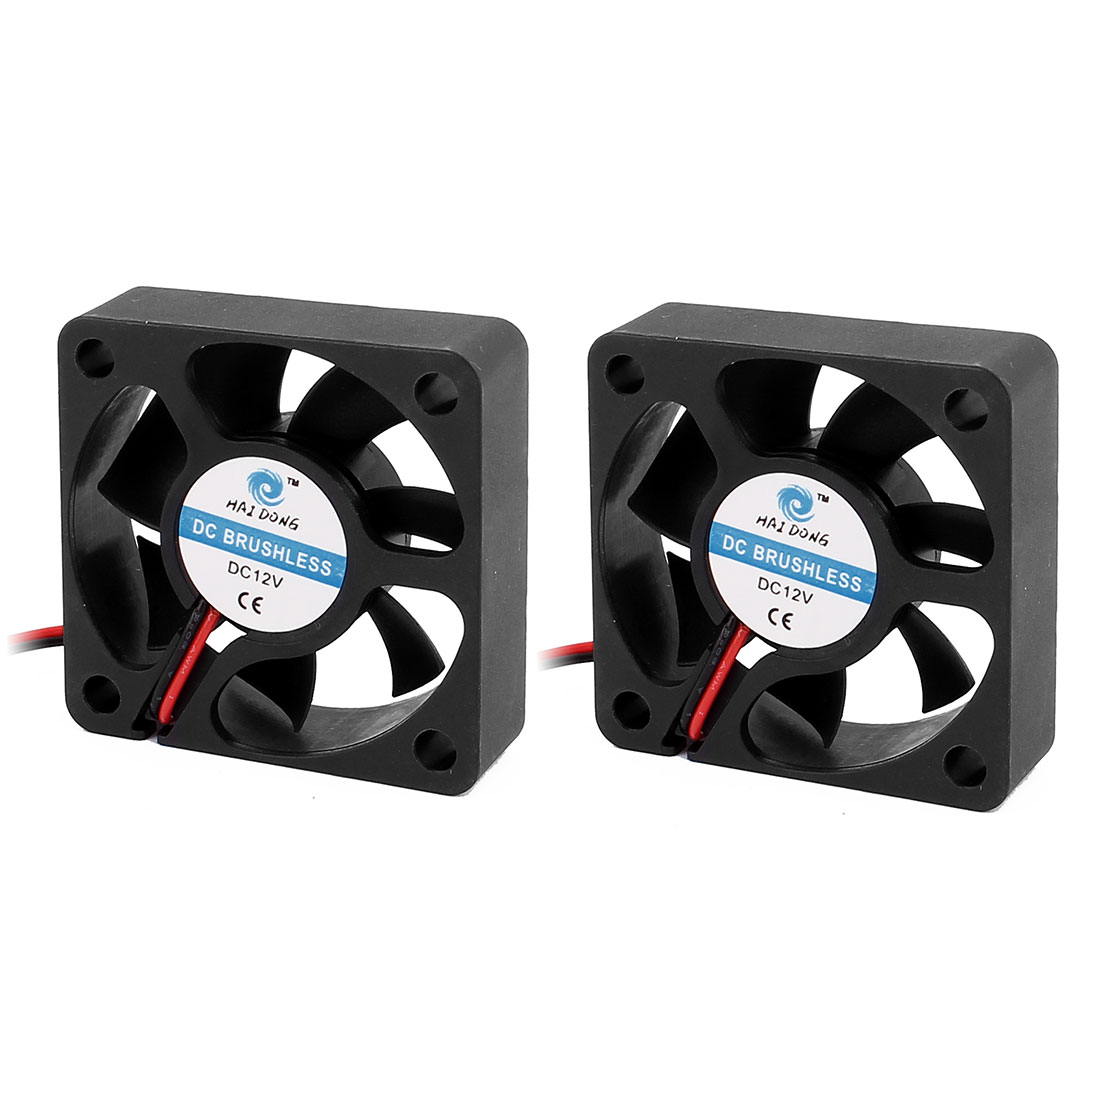 2Pcs 12V 50mm Black Quiet Case Cooling Fan 4500 RPM, 10.9 CMF, 29 dBA